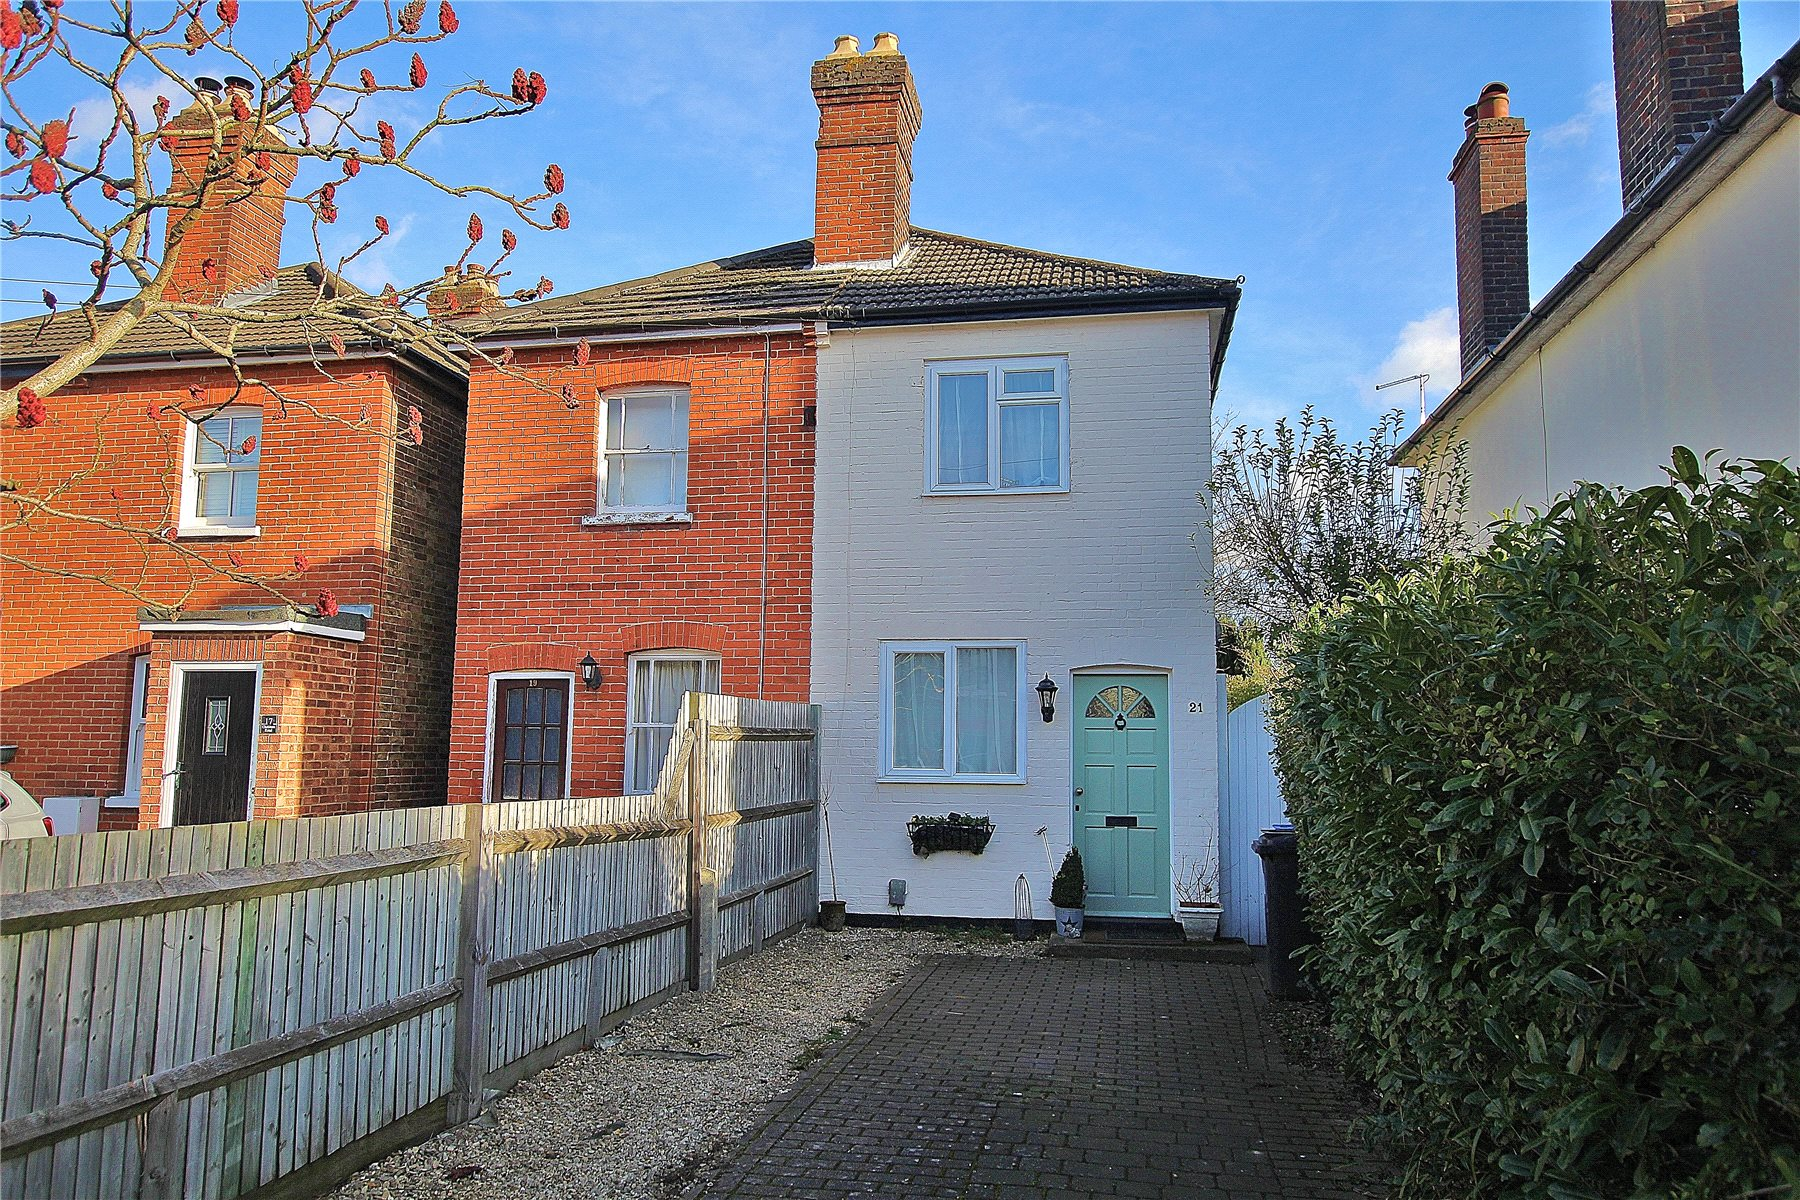 3 Bedrooms House for sale in Chobham Road, Knaphill, Woking, Surrey, GU21